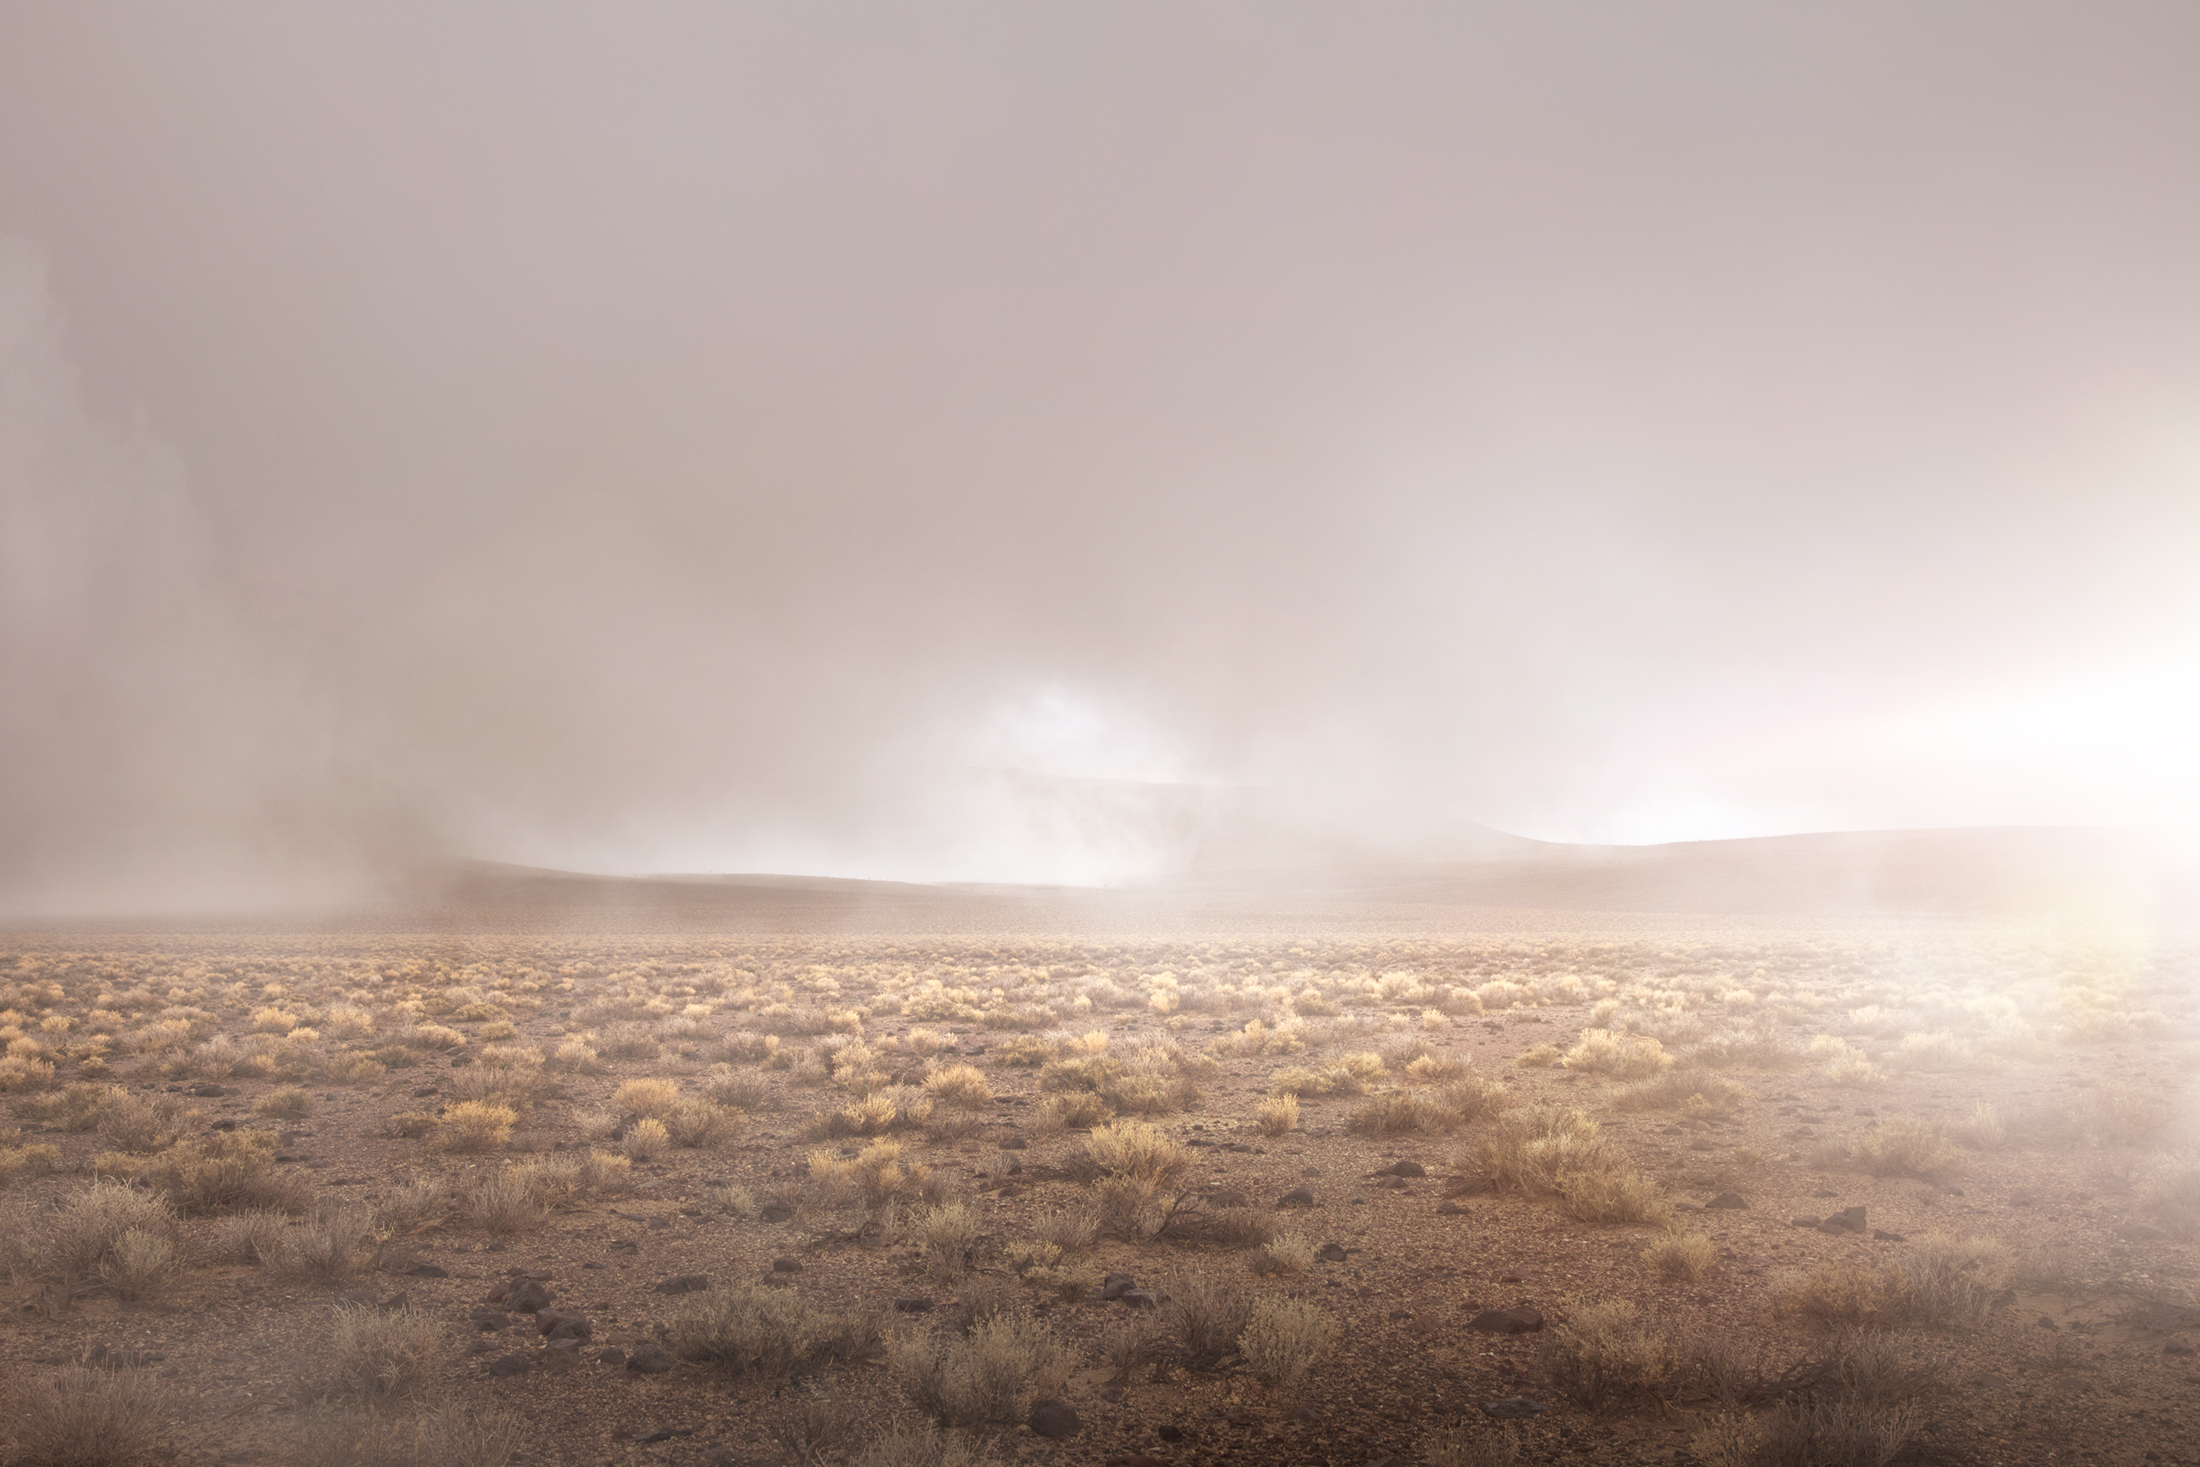 4) Infinity Series #2681, Death Valley. Photograph, 32X48 inches, 2018.